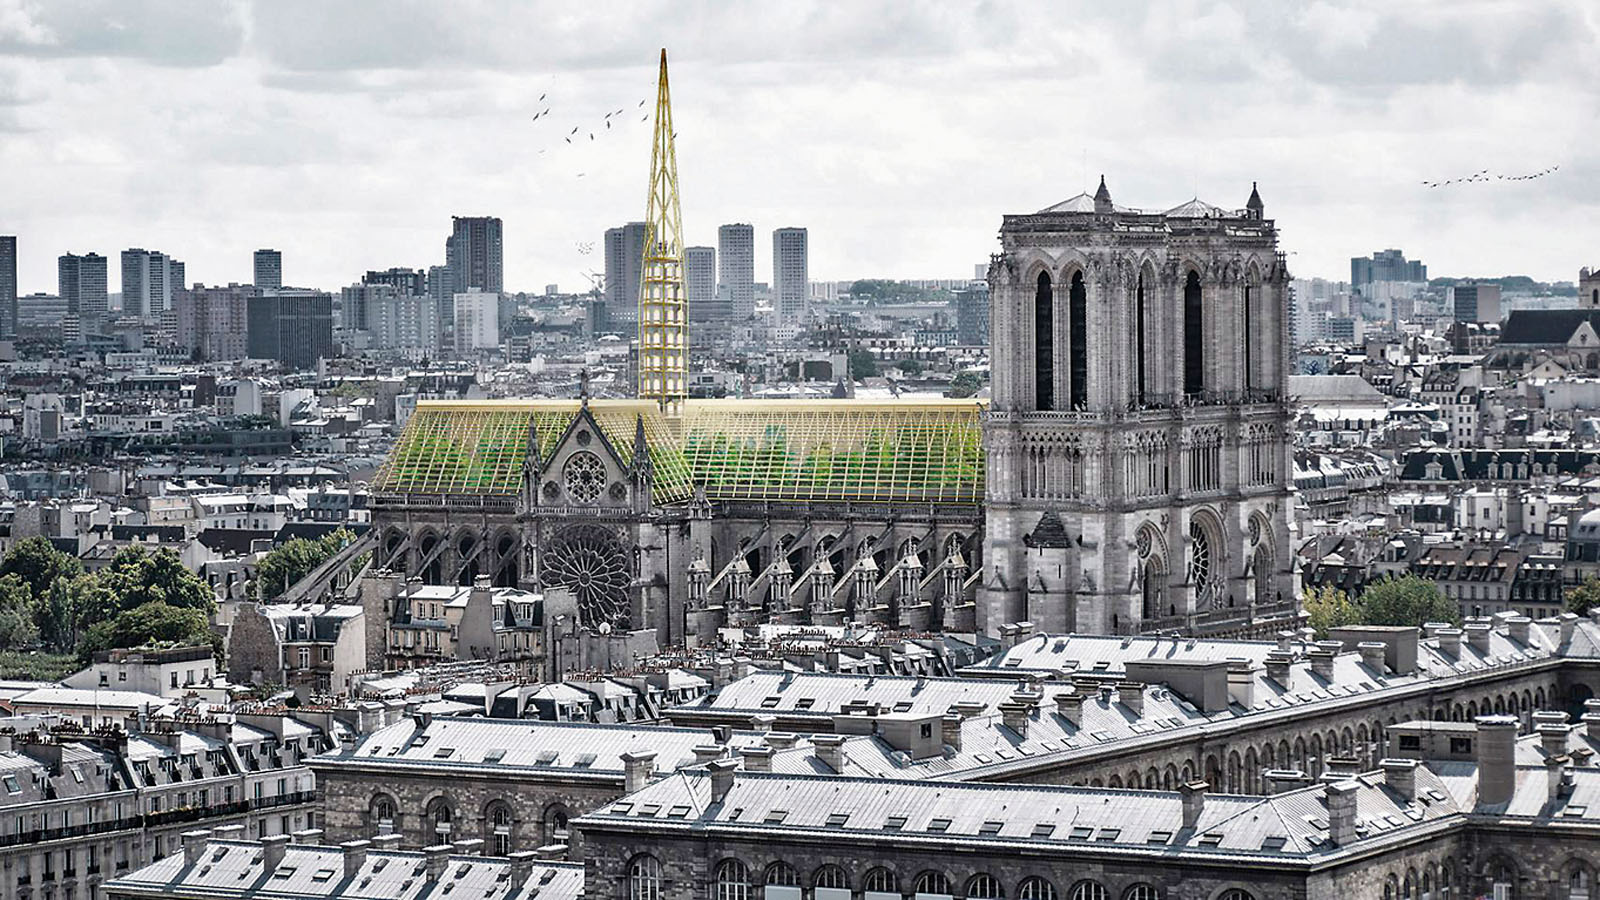 239777-308481-notre-dame-cathedral-paris-roof-greenhouse-NAB-Studio_dezeen_2364_hero_1-1704x959